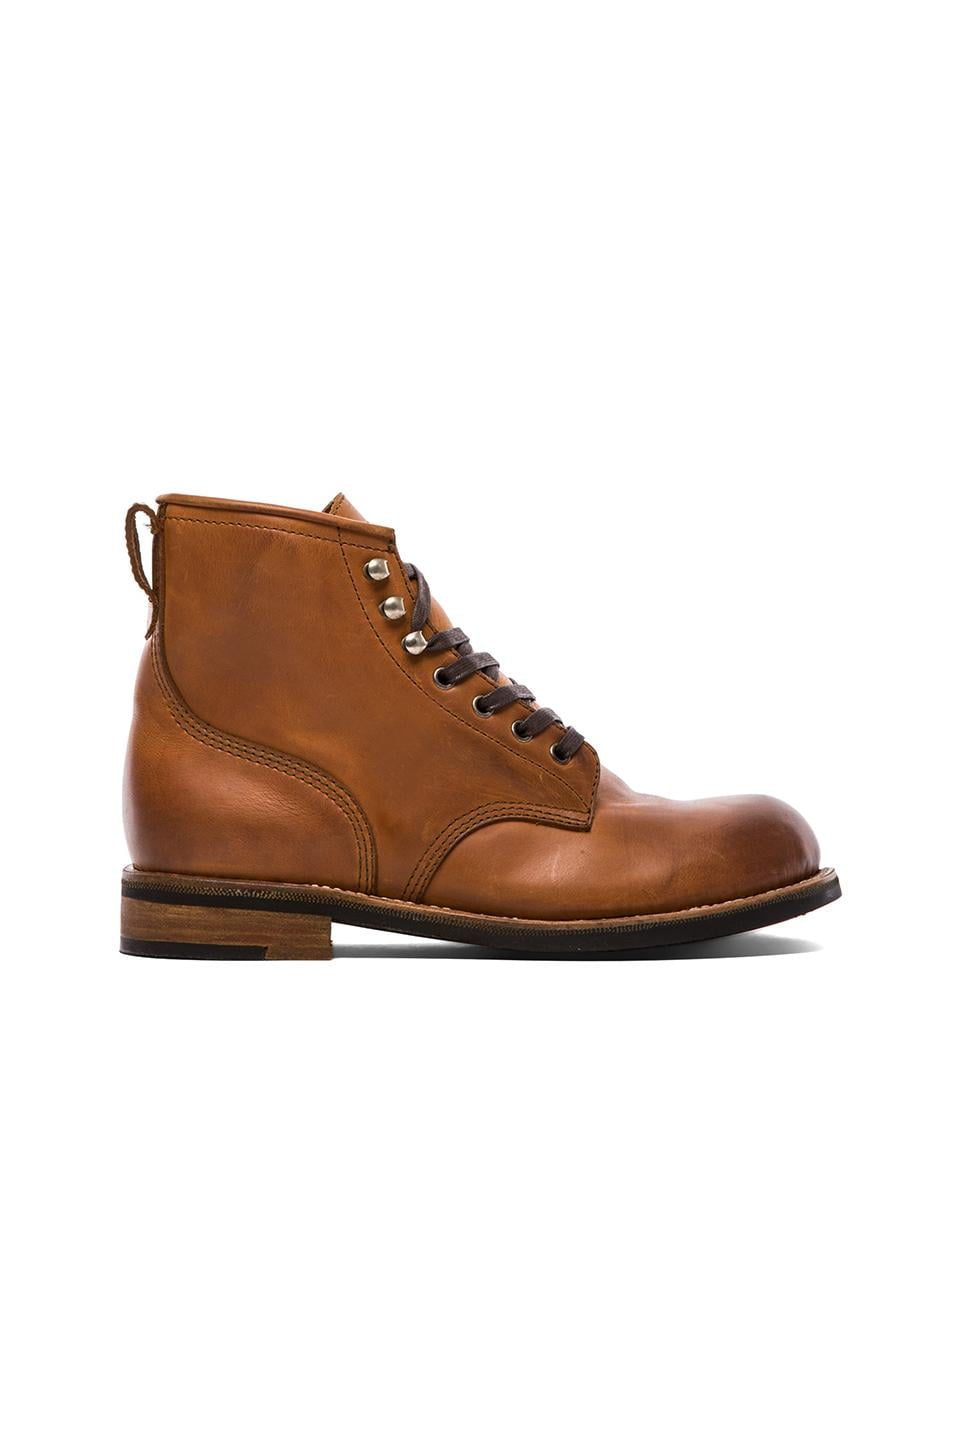 COMUNE Reed Classic Utility Boot in Tan